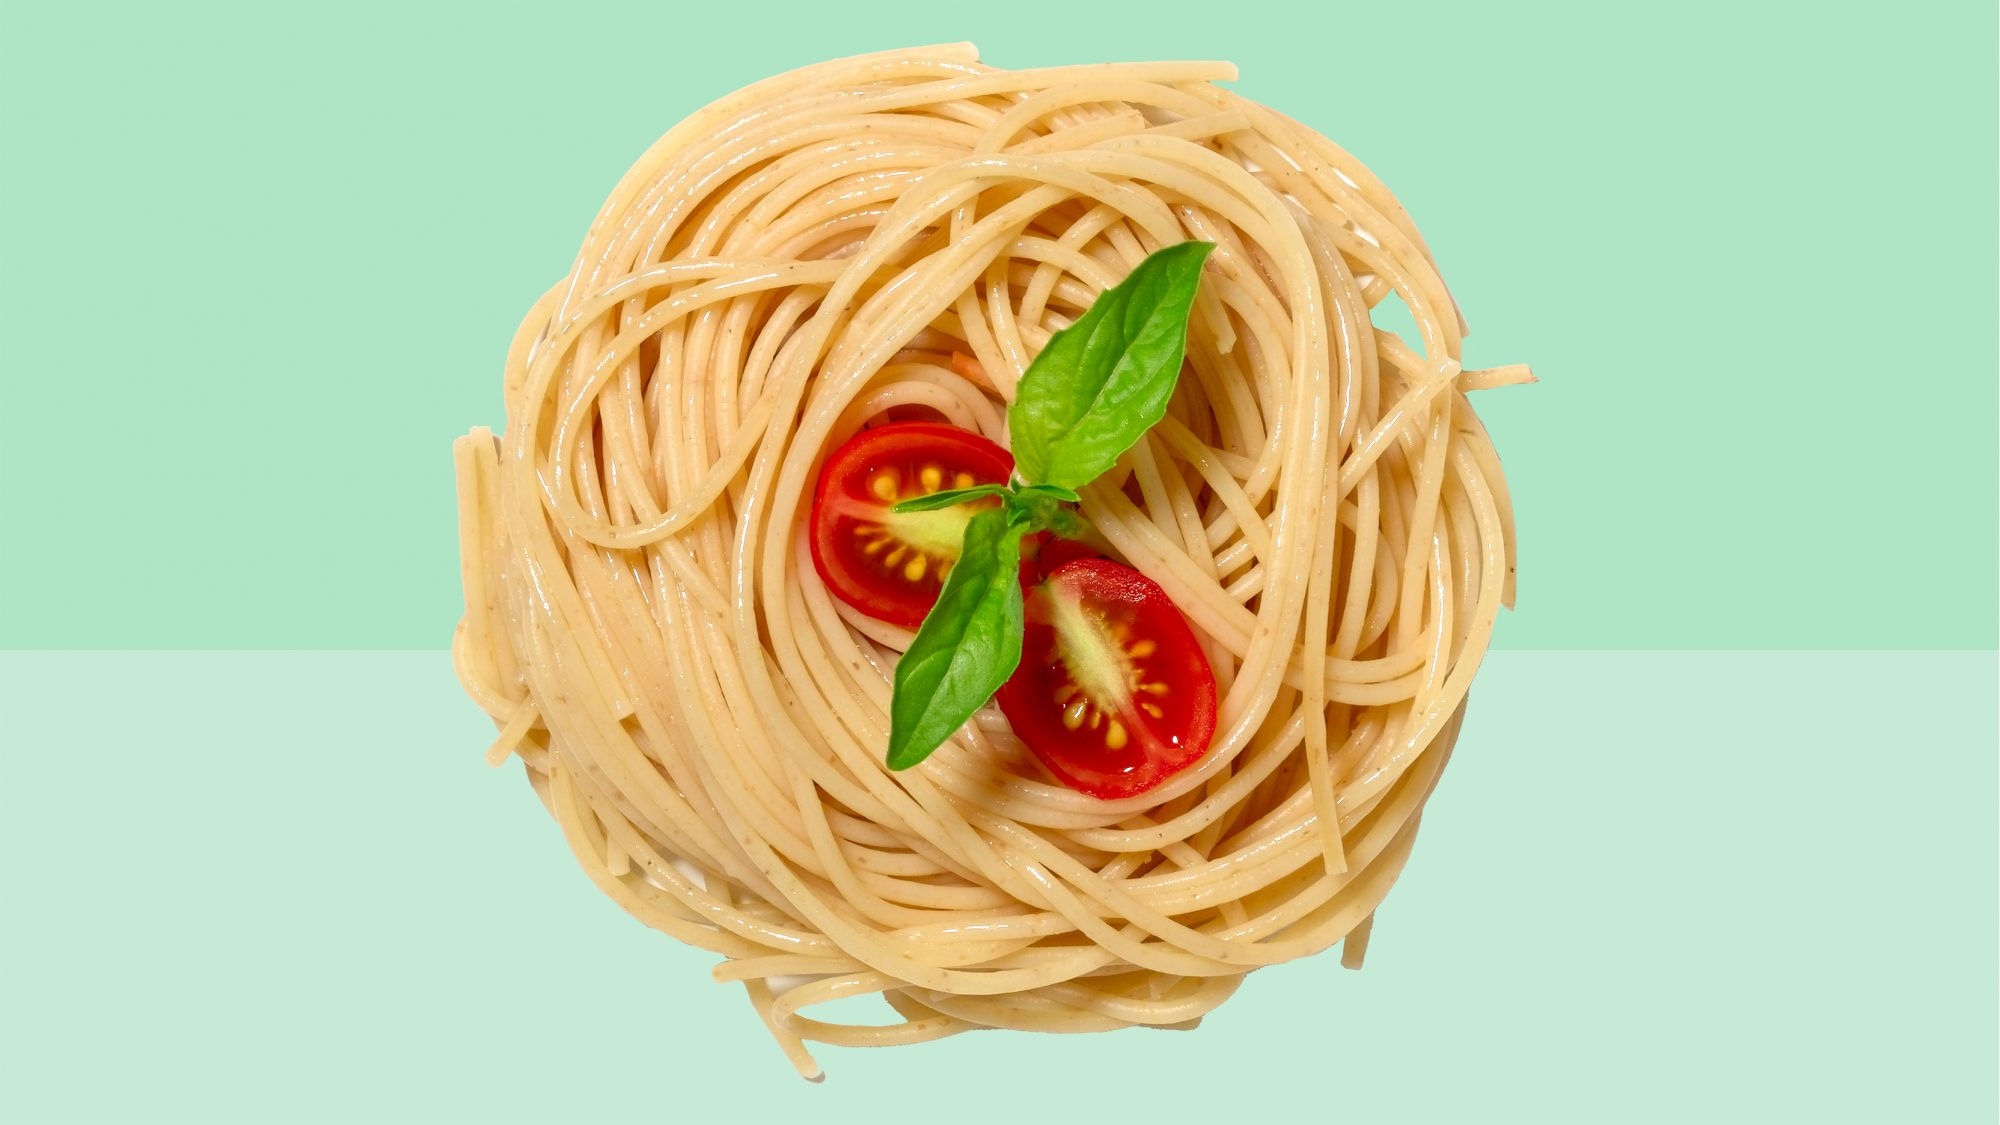 I Cook Pasta Just so I Can Make These 4 Delicious Dishes With the